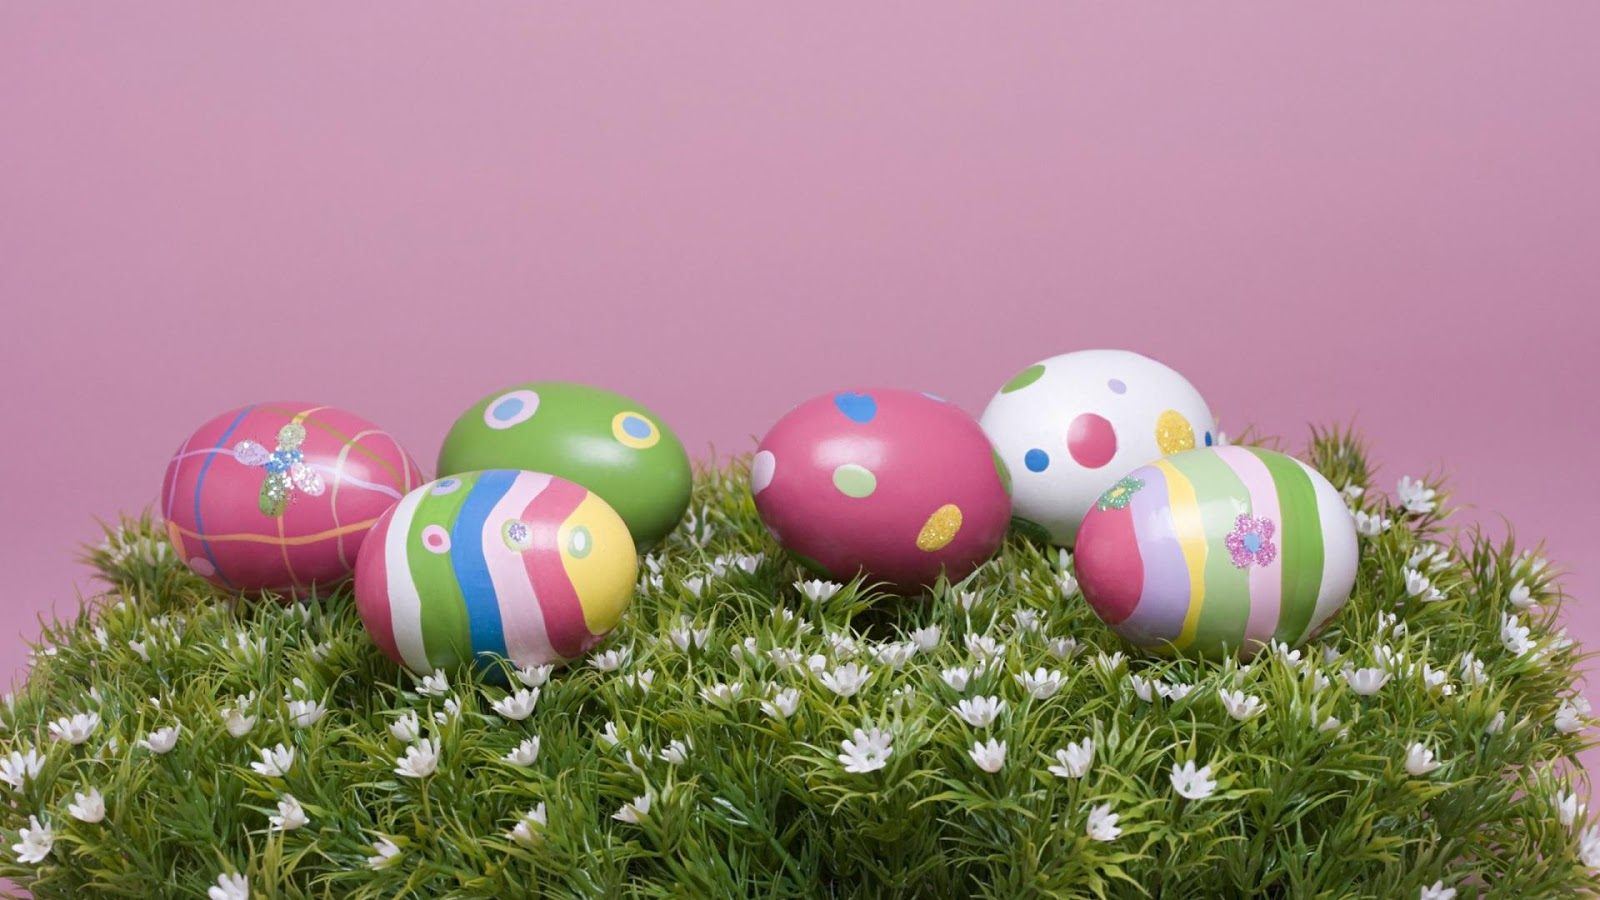 HDMOU TOP 22 MOST COLORFULL EASTER WALLPAPERS IN HD 1600x900